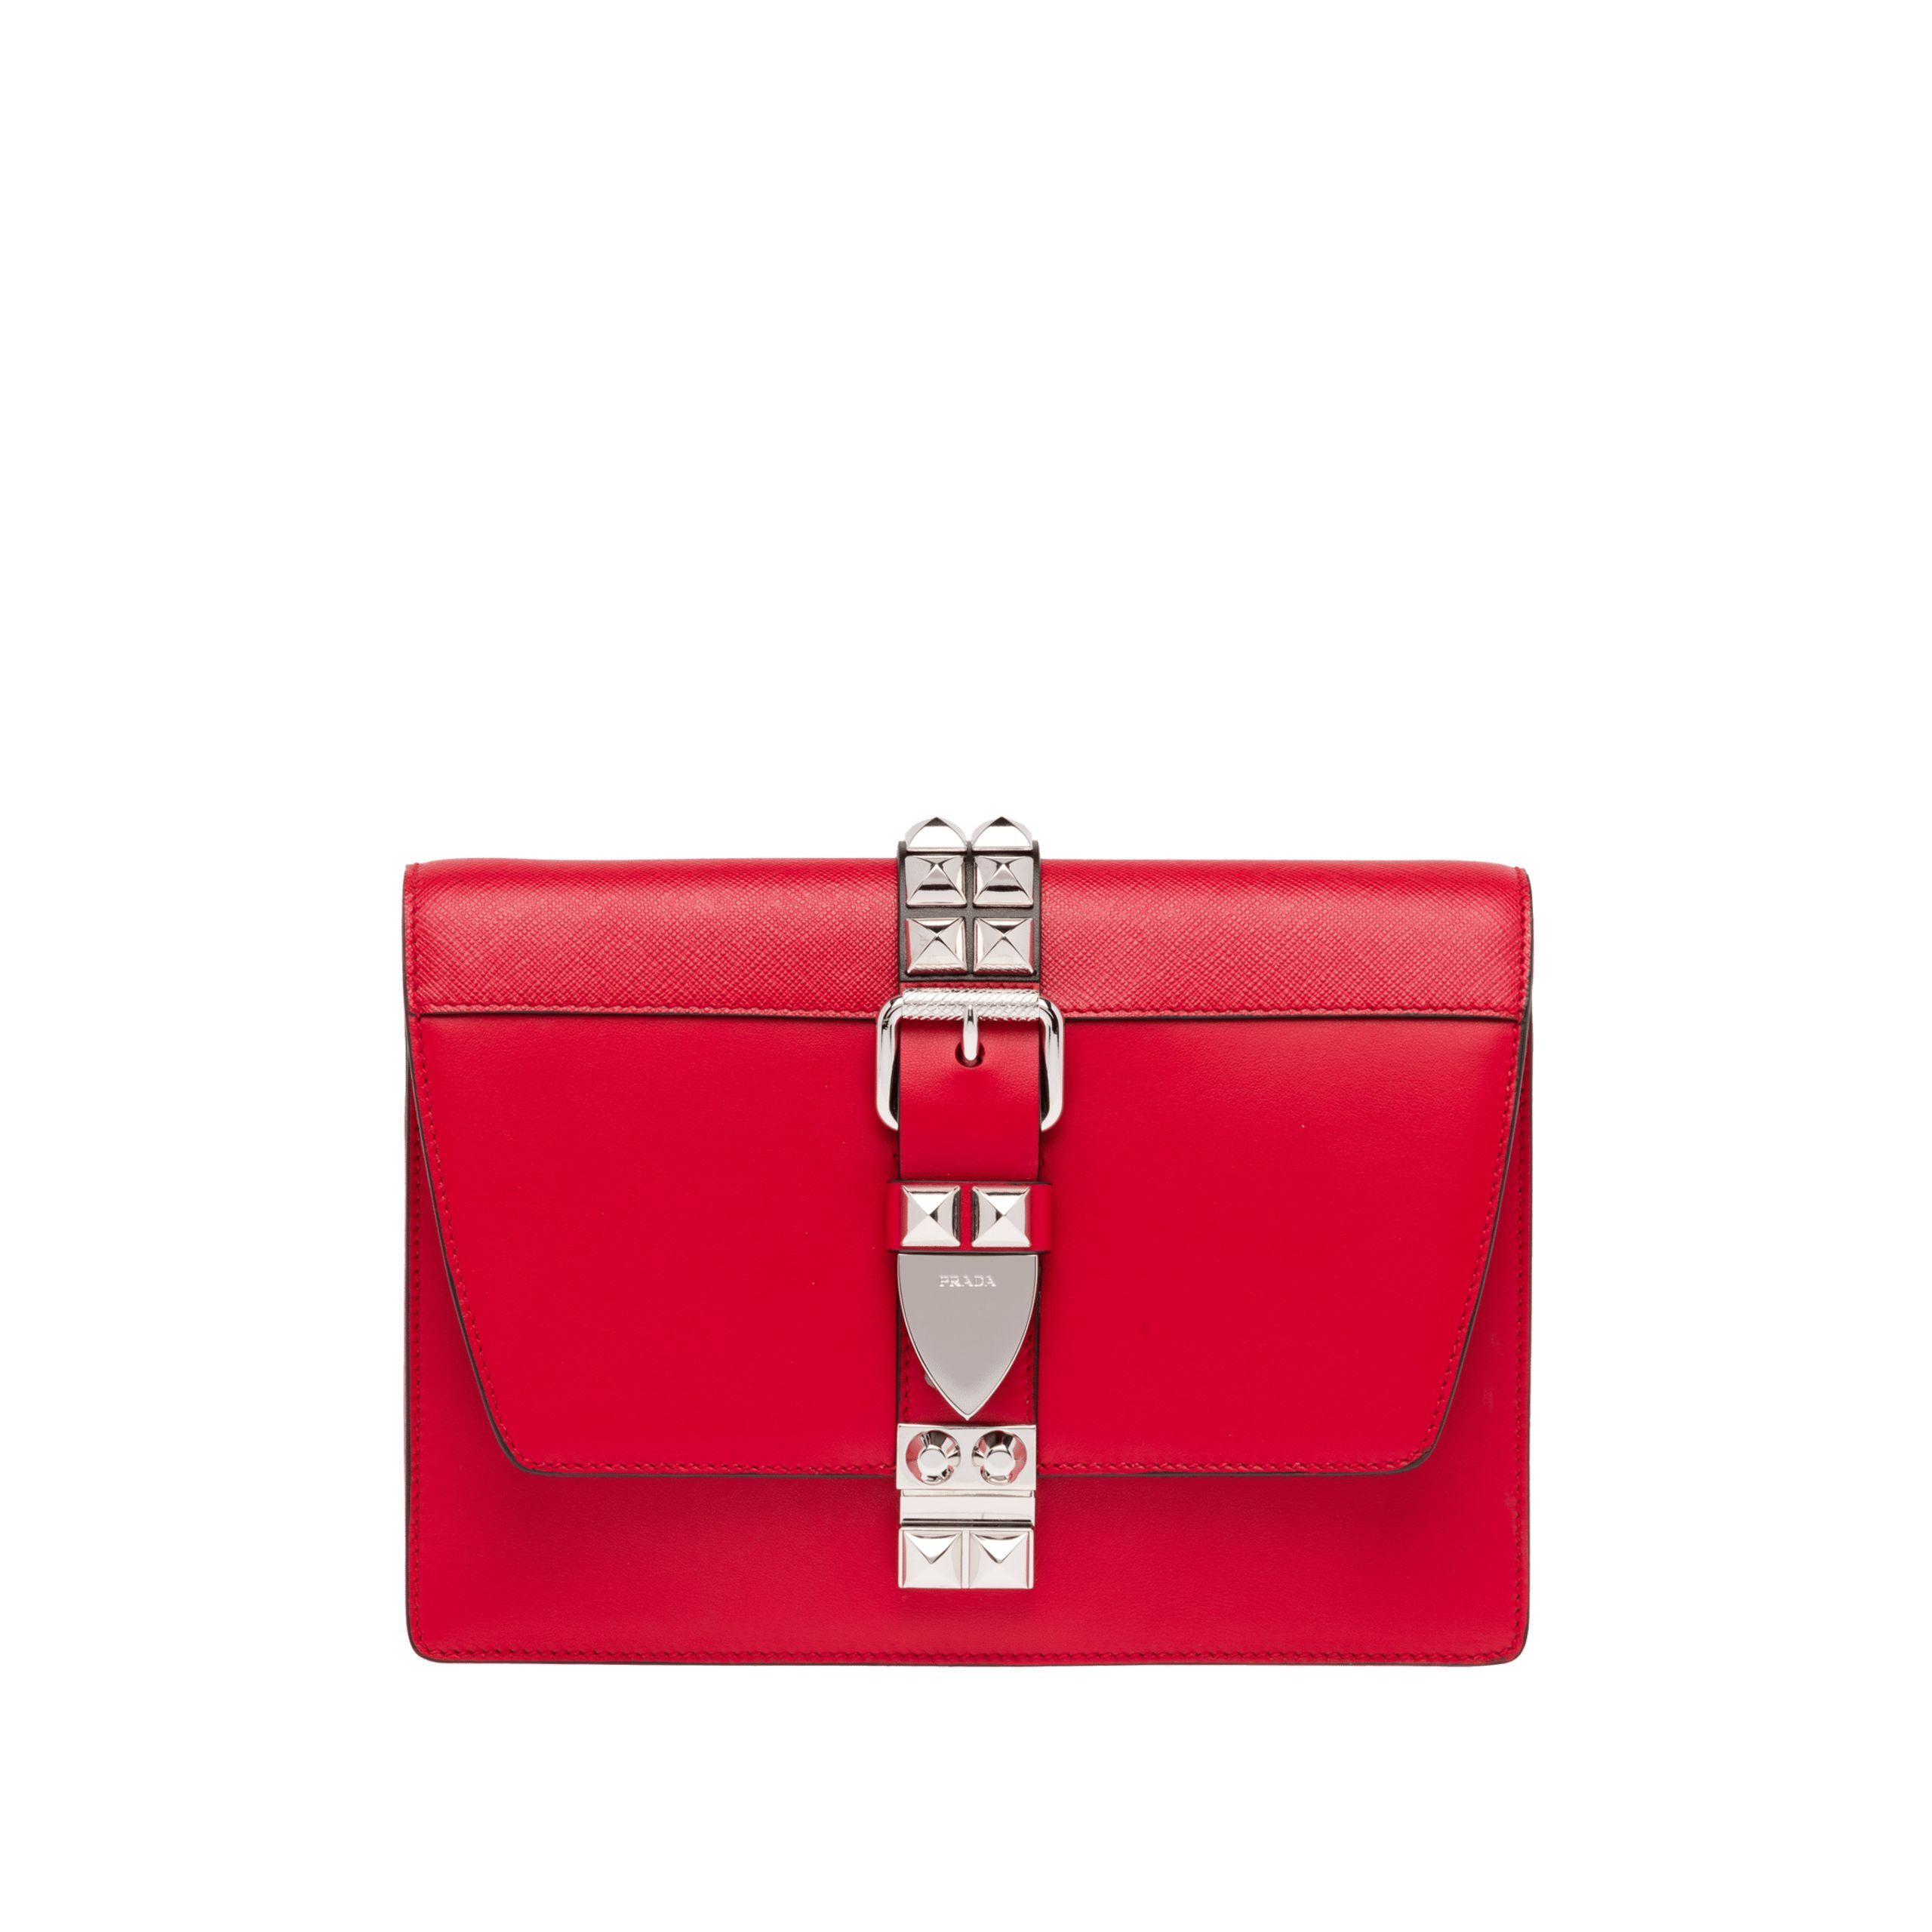 06fe298a81 Prada Elektra calf leather bag